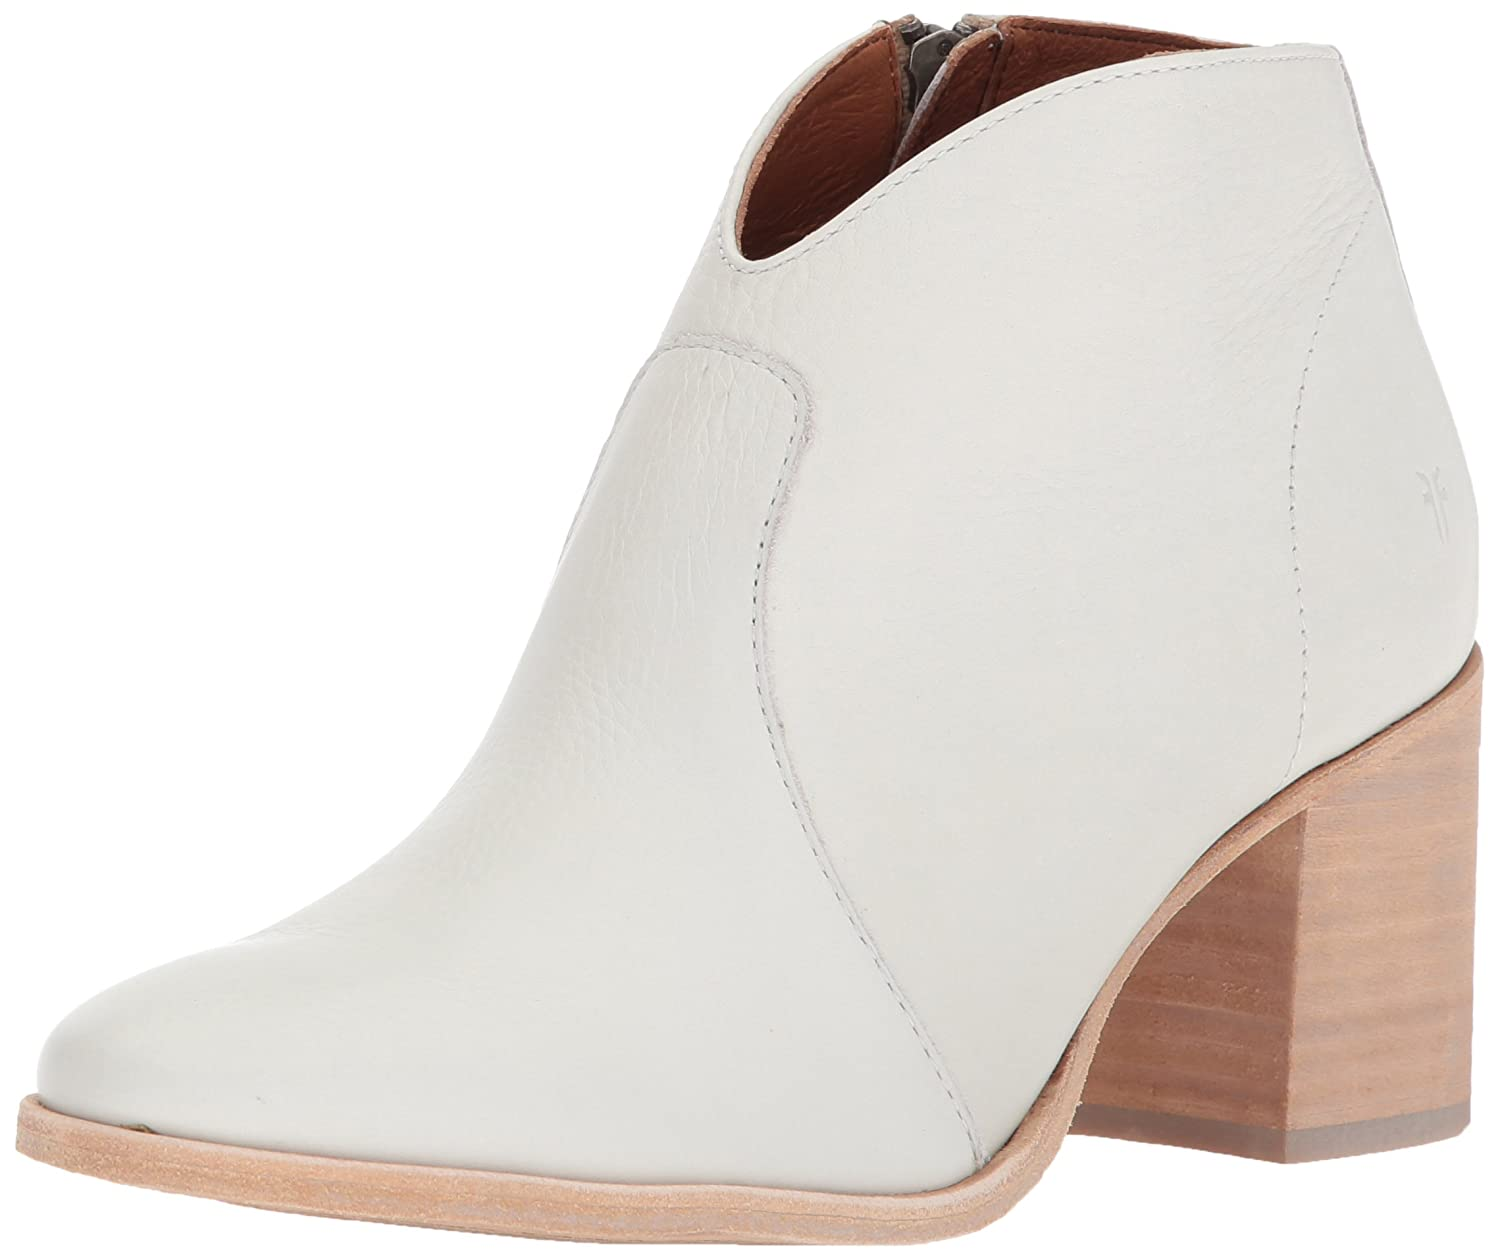 FRYE Women's Nora Zip Short Ankle Boot B071JZLVVR 10 B(M) US|White